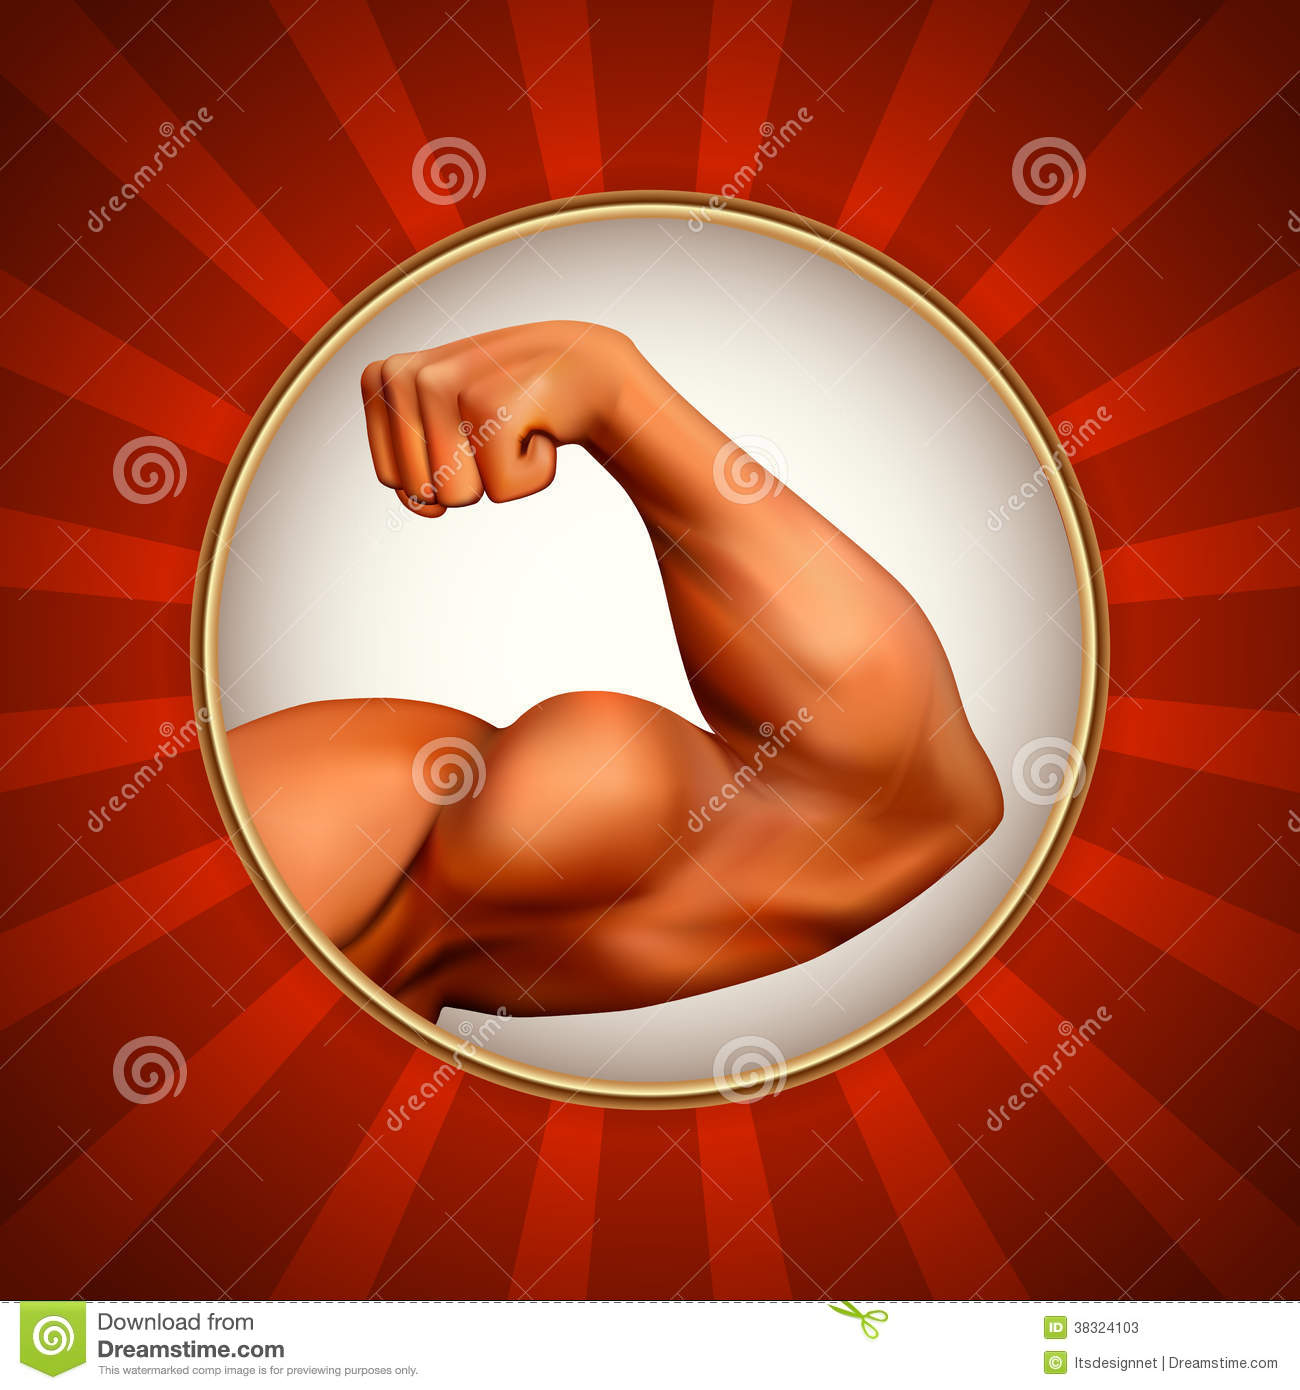 Illustration with detailed strong arm. Power symbol.